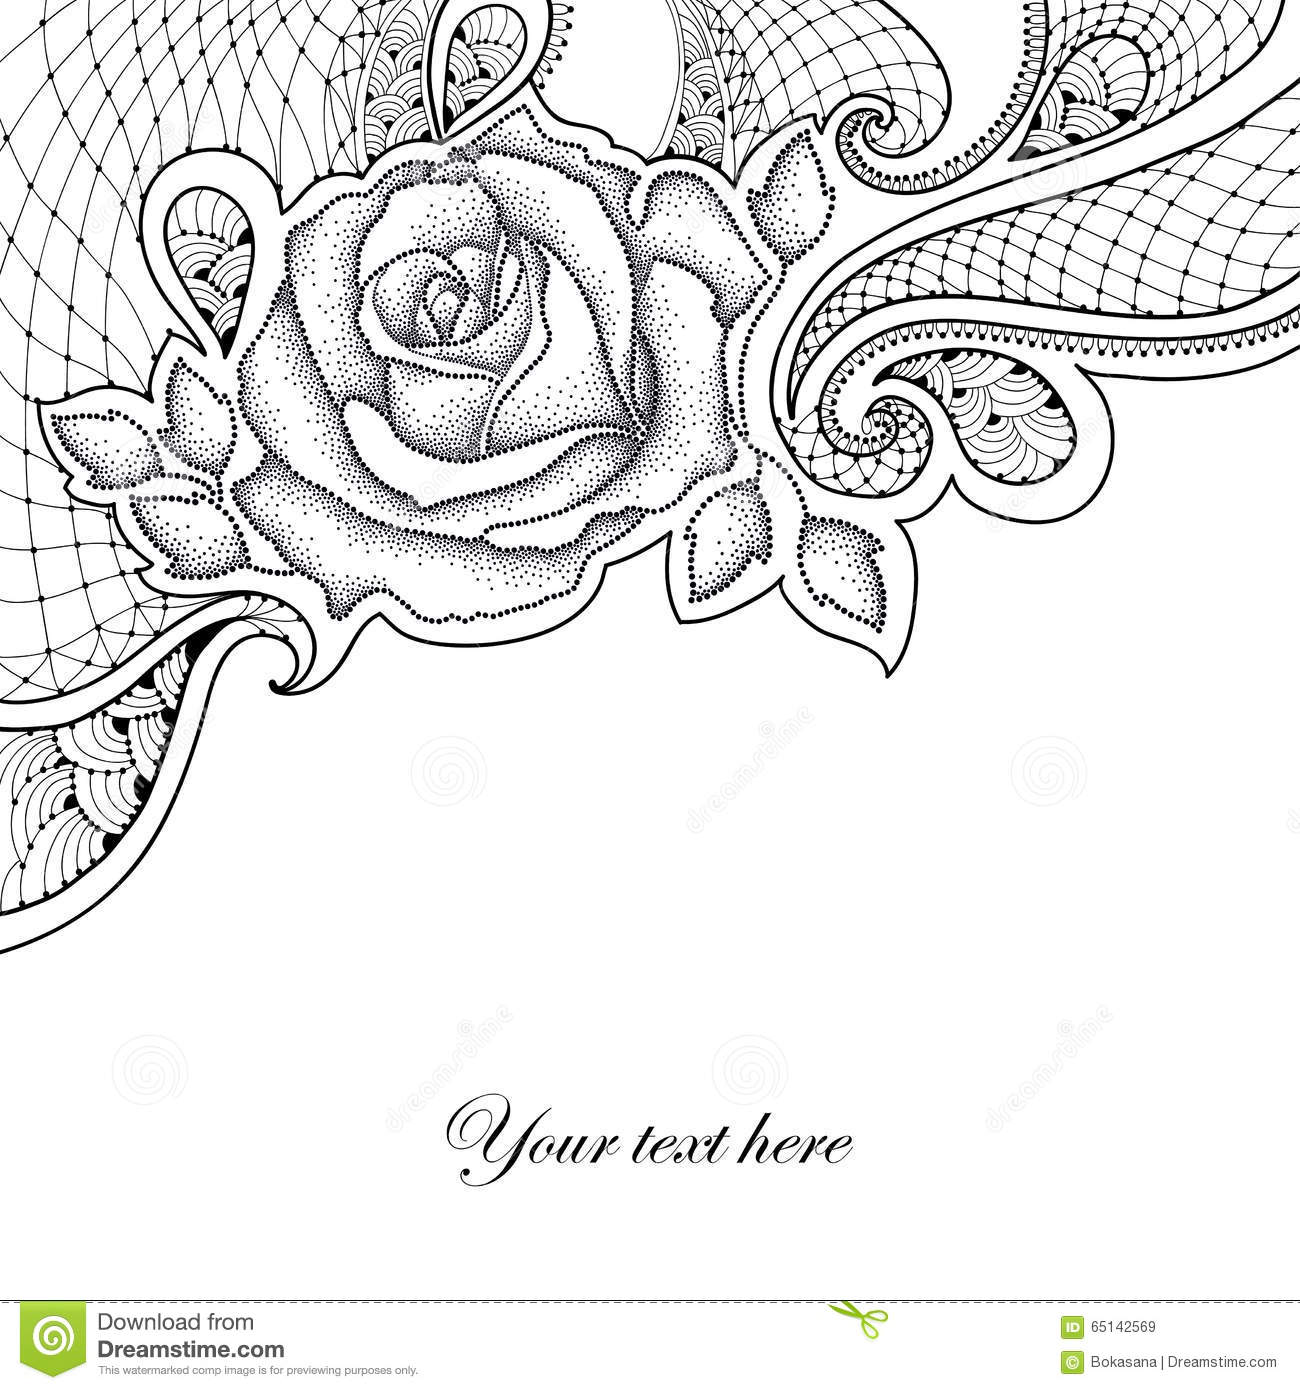 Black Flower Rose From Lace On White Background: Greeting Card With Dotted Rose With Leaves And Decorative